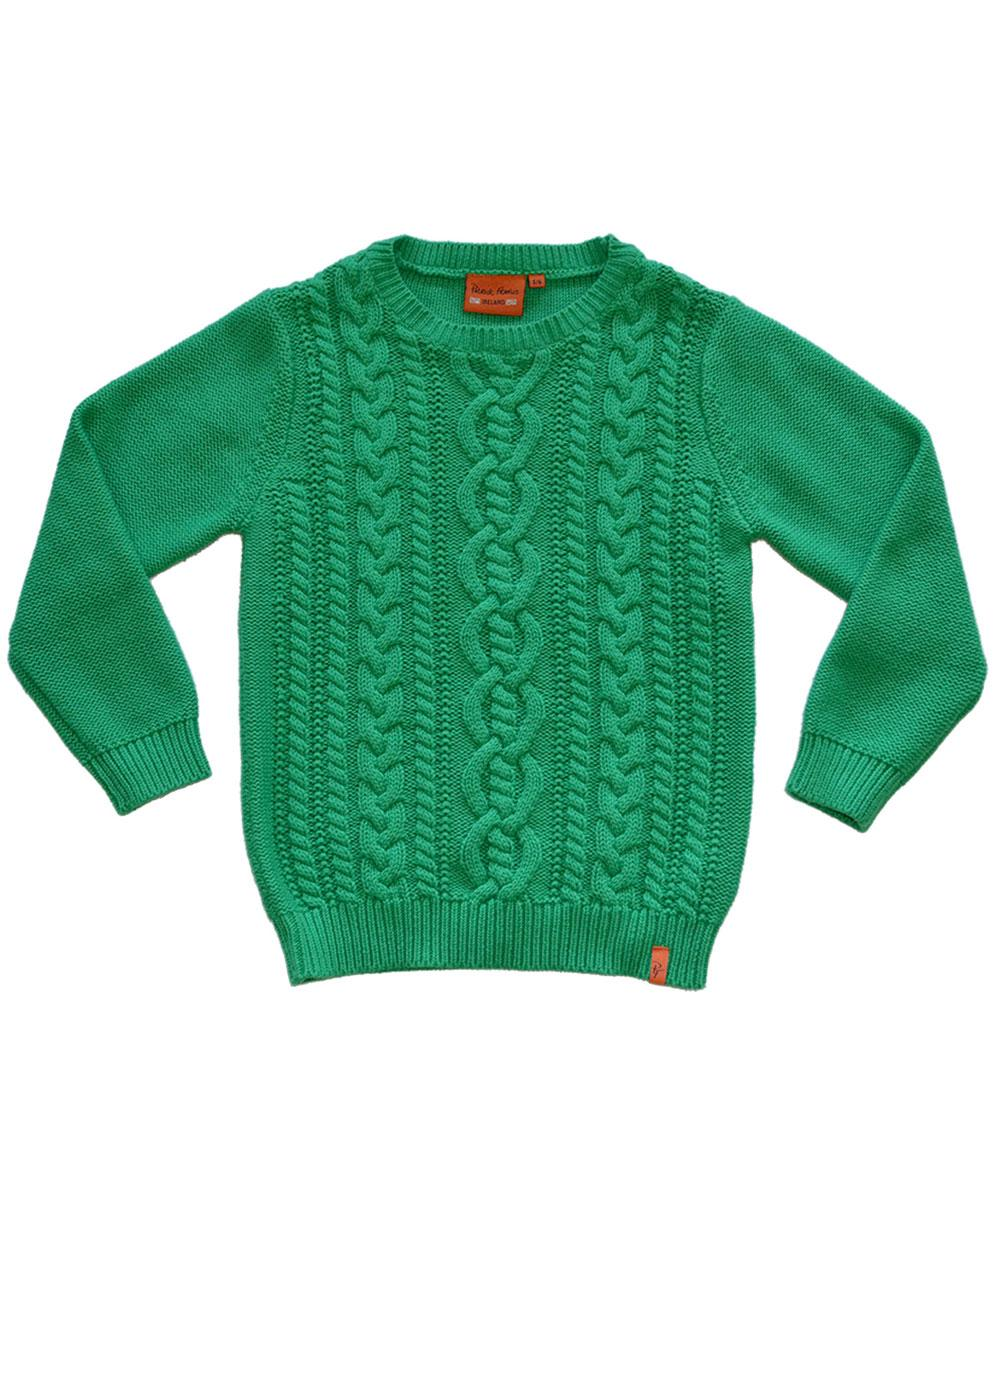 Kid's Cotton Cable Knit Sweater Green | Blarney